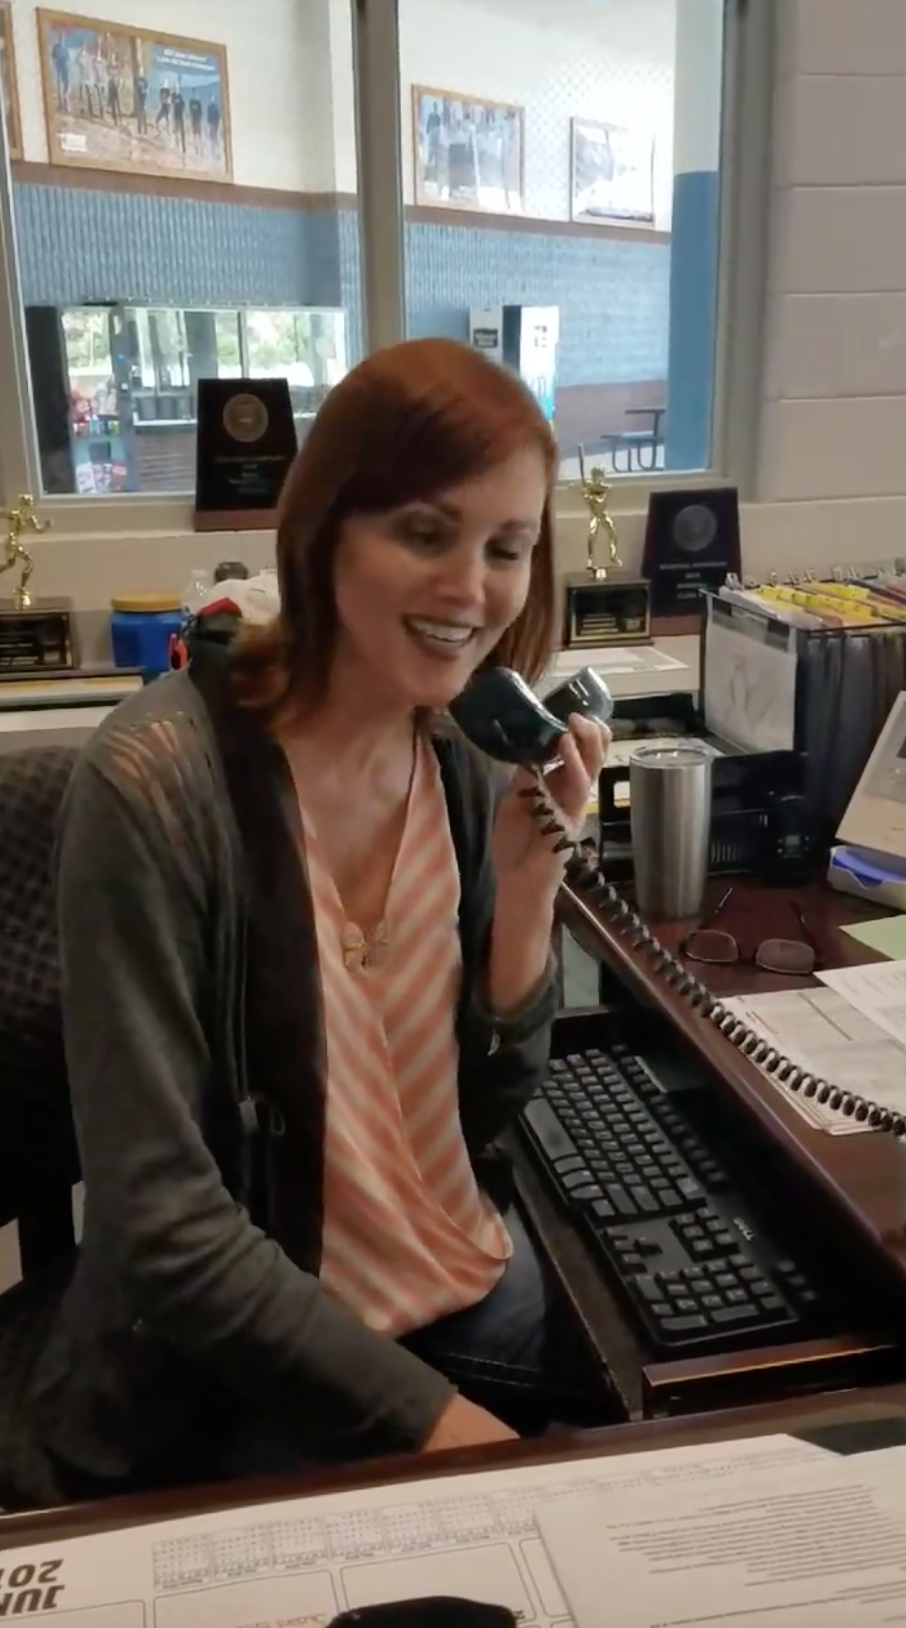 This school receptionist's stunning version of 'At Last' is how we all feel about summer